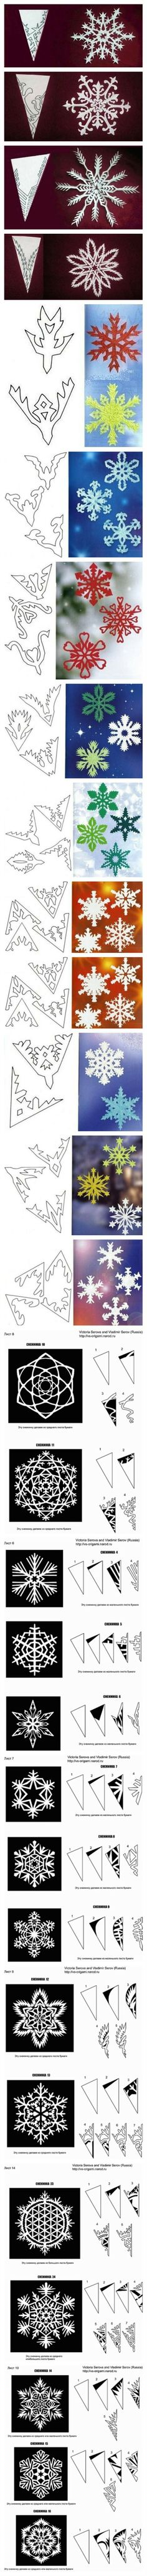 ~Snowflake Patterns~ Get out the scissors!